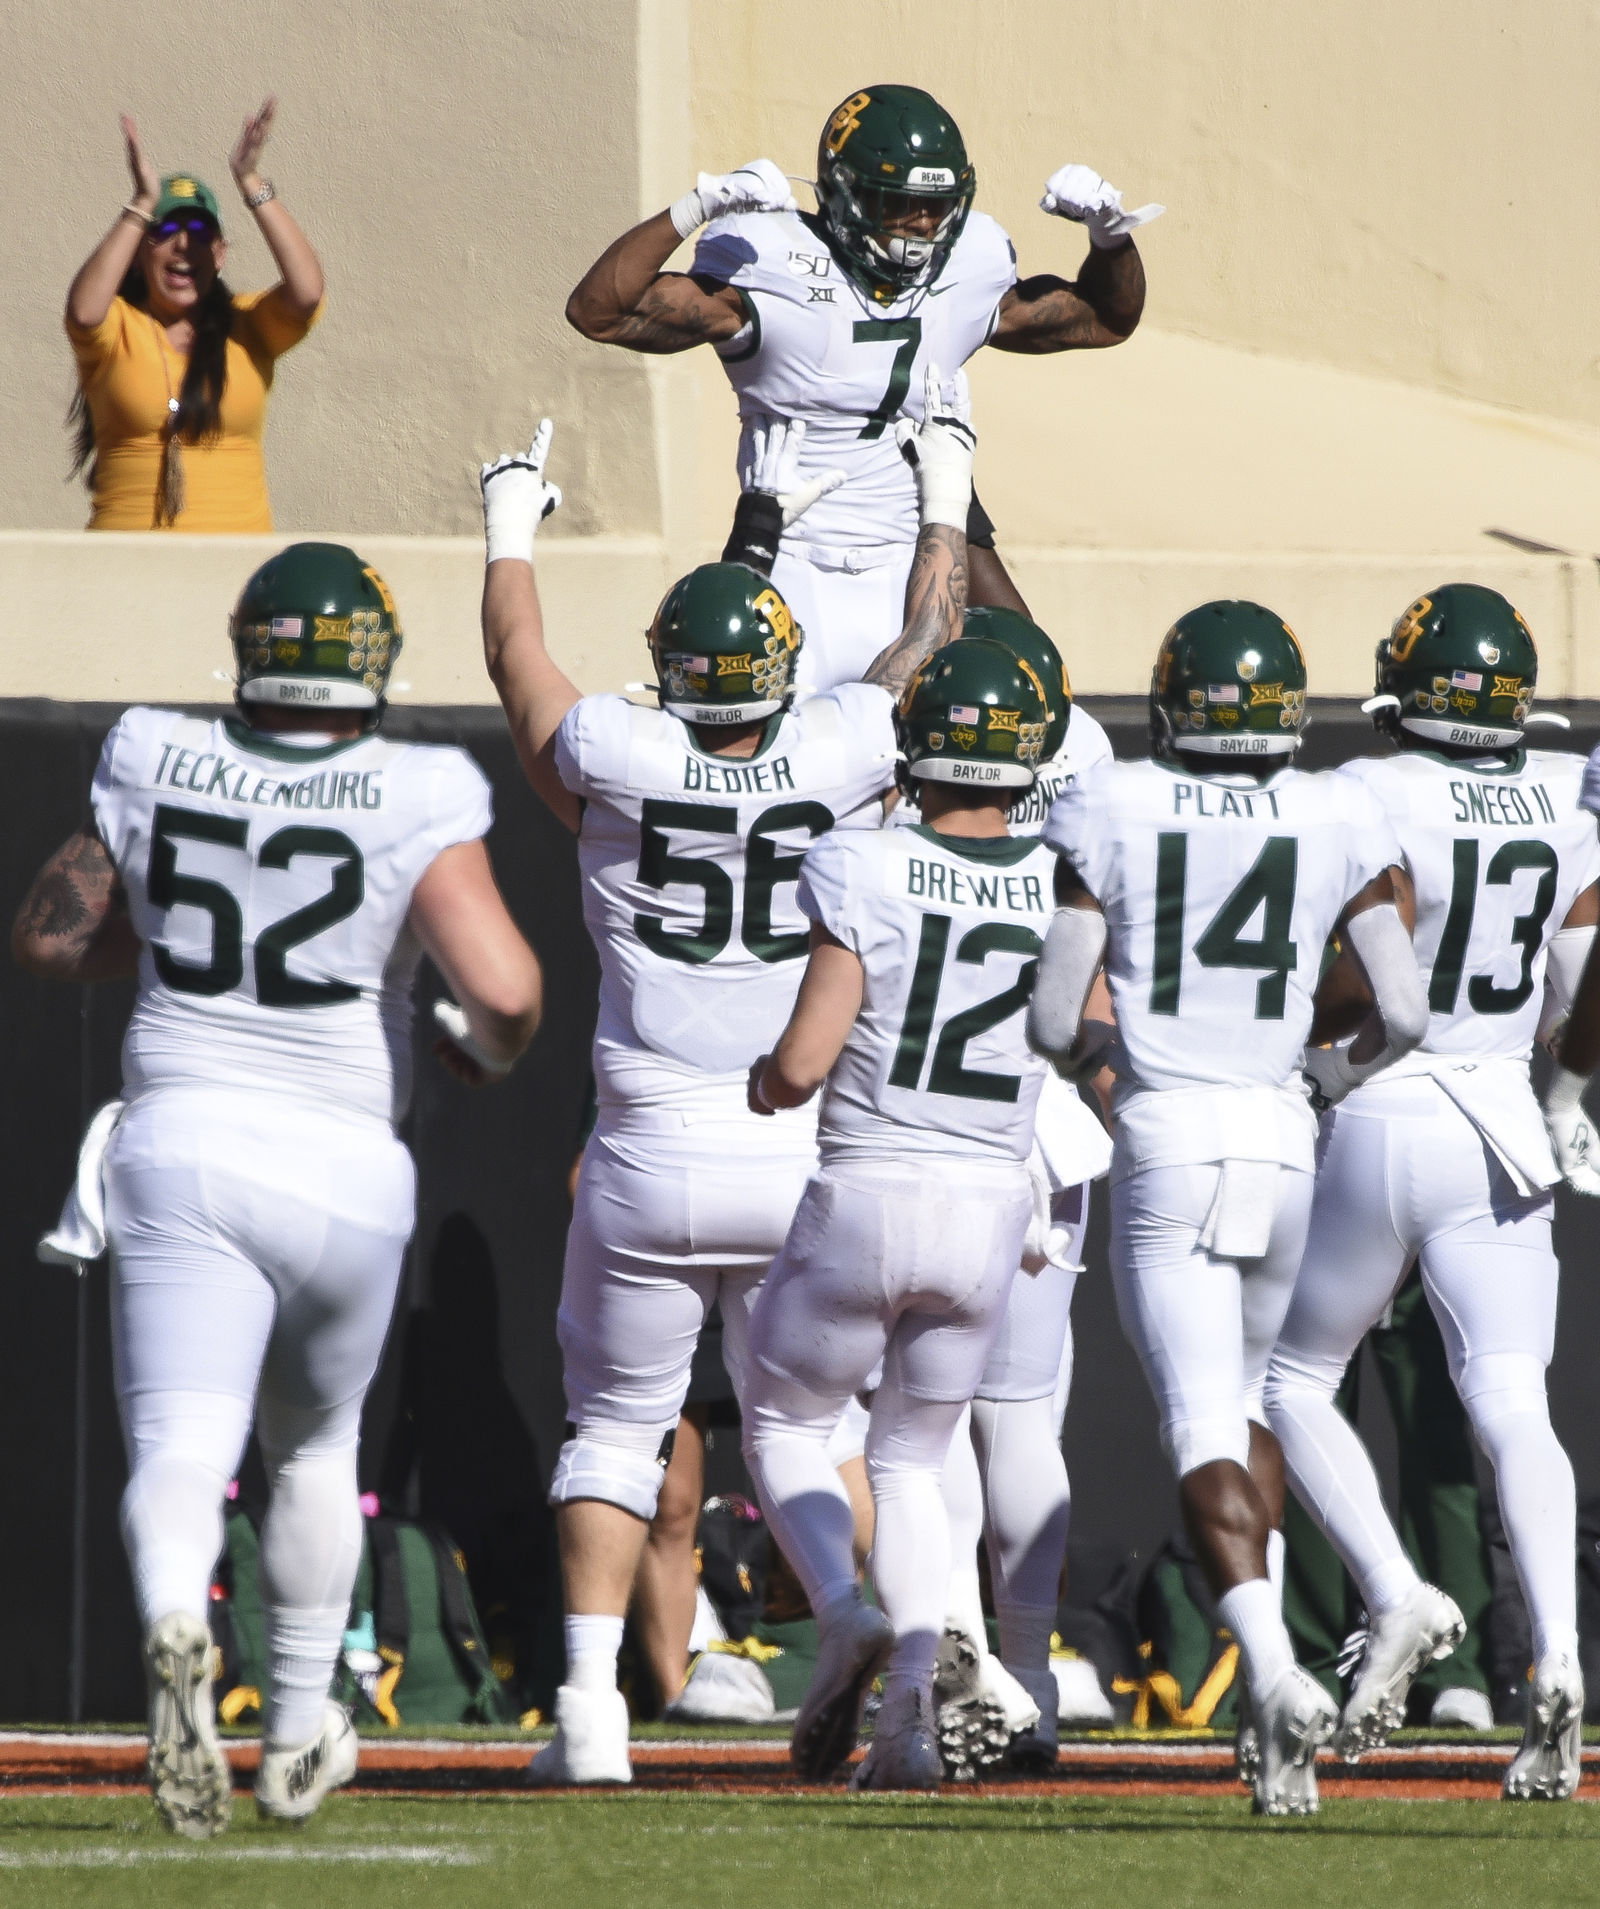 Baylor running back John Lovett (7) is lifted by teammates as he celebrates the first touchdown in the first half of an NCAA college football game against Oklahoma State in Stillwater, Okla., Saturday, Oct. 19, 2019. (AP Photo/Brody Schmidt)